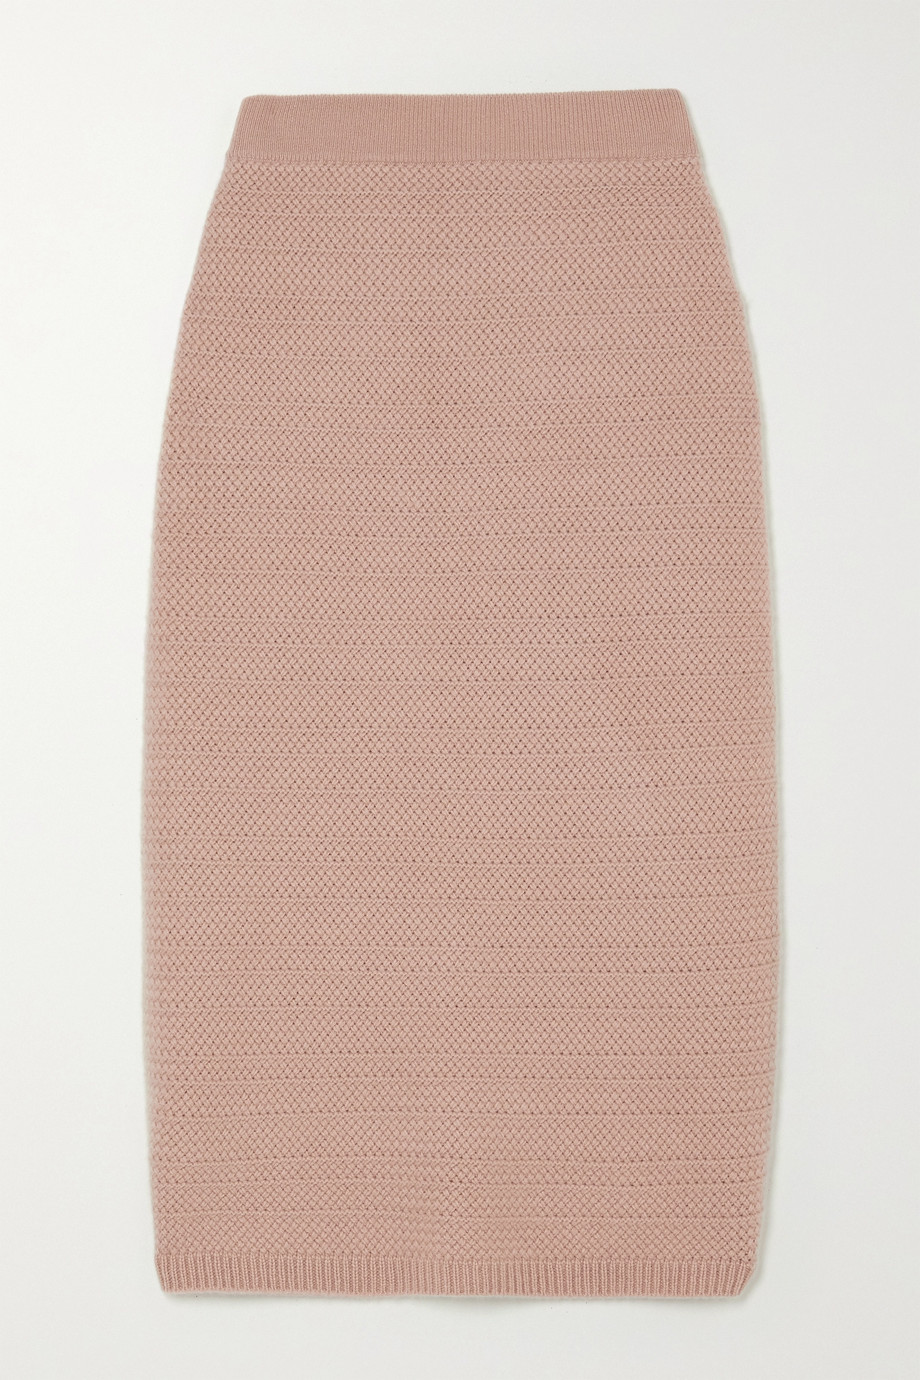 Arch4 Tower Bridge cashmere midi skirt